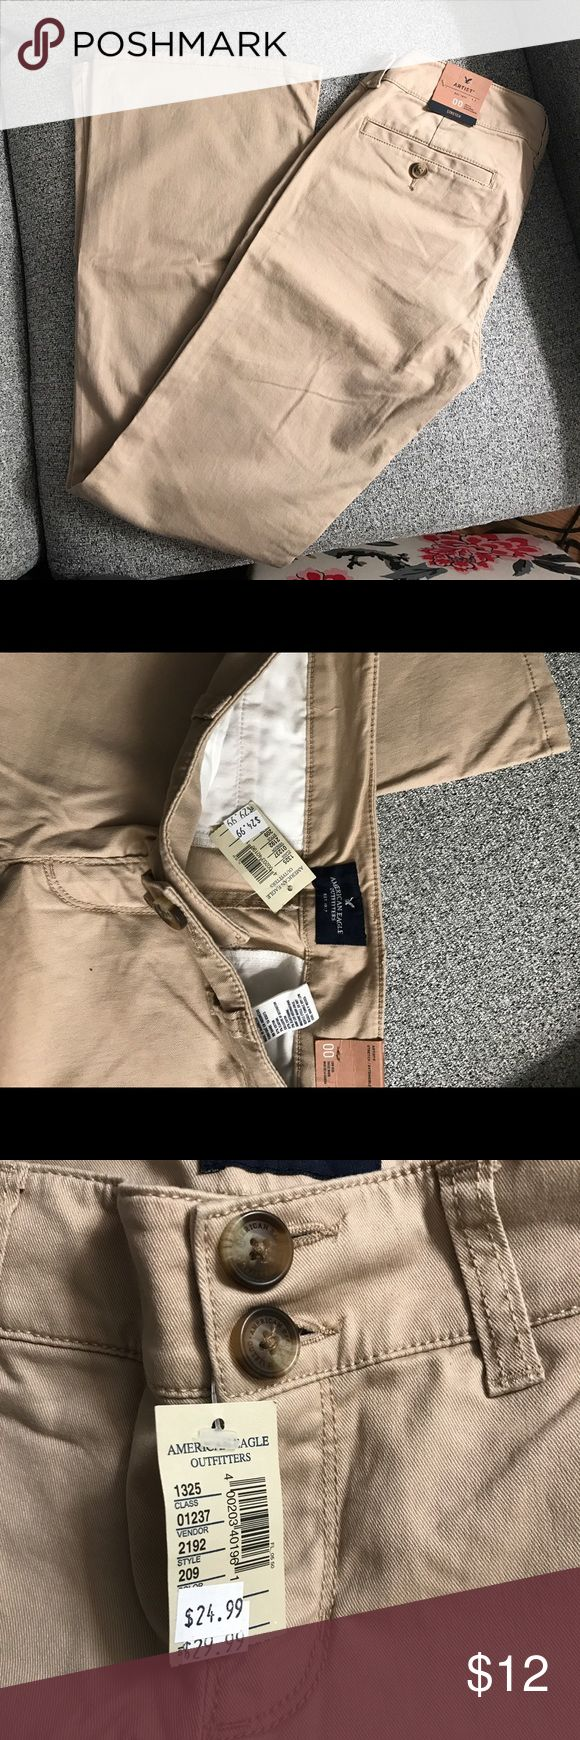 Brand new American Eagle khakis Great condition. New with tags American Eagle Outfitters Pants Trousers